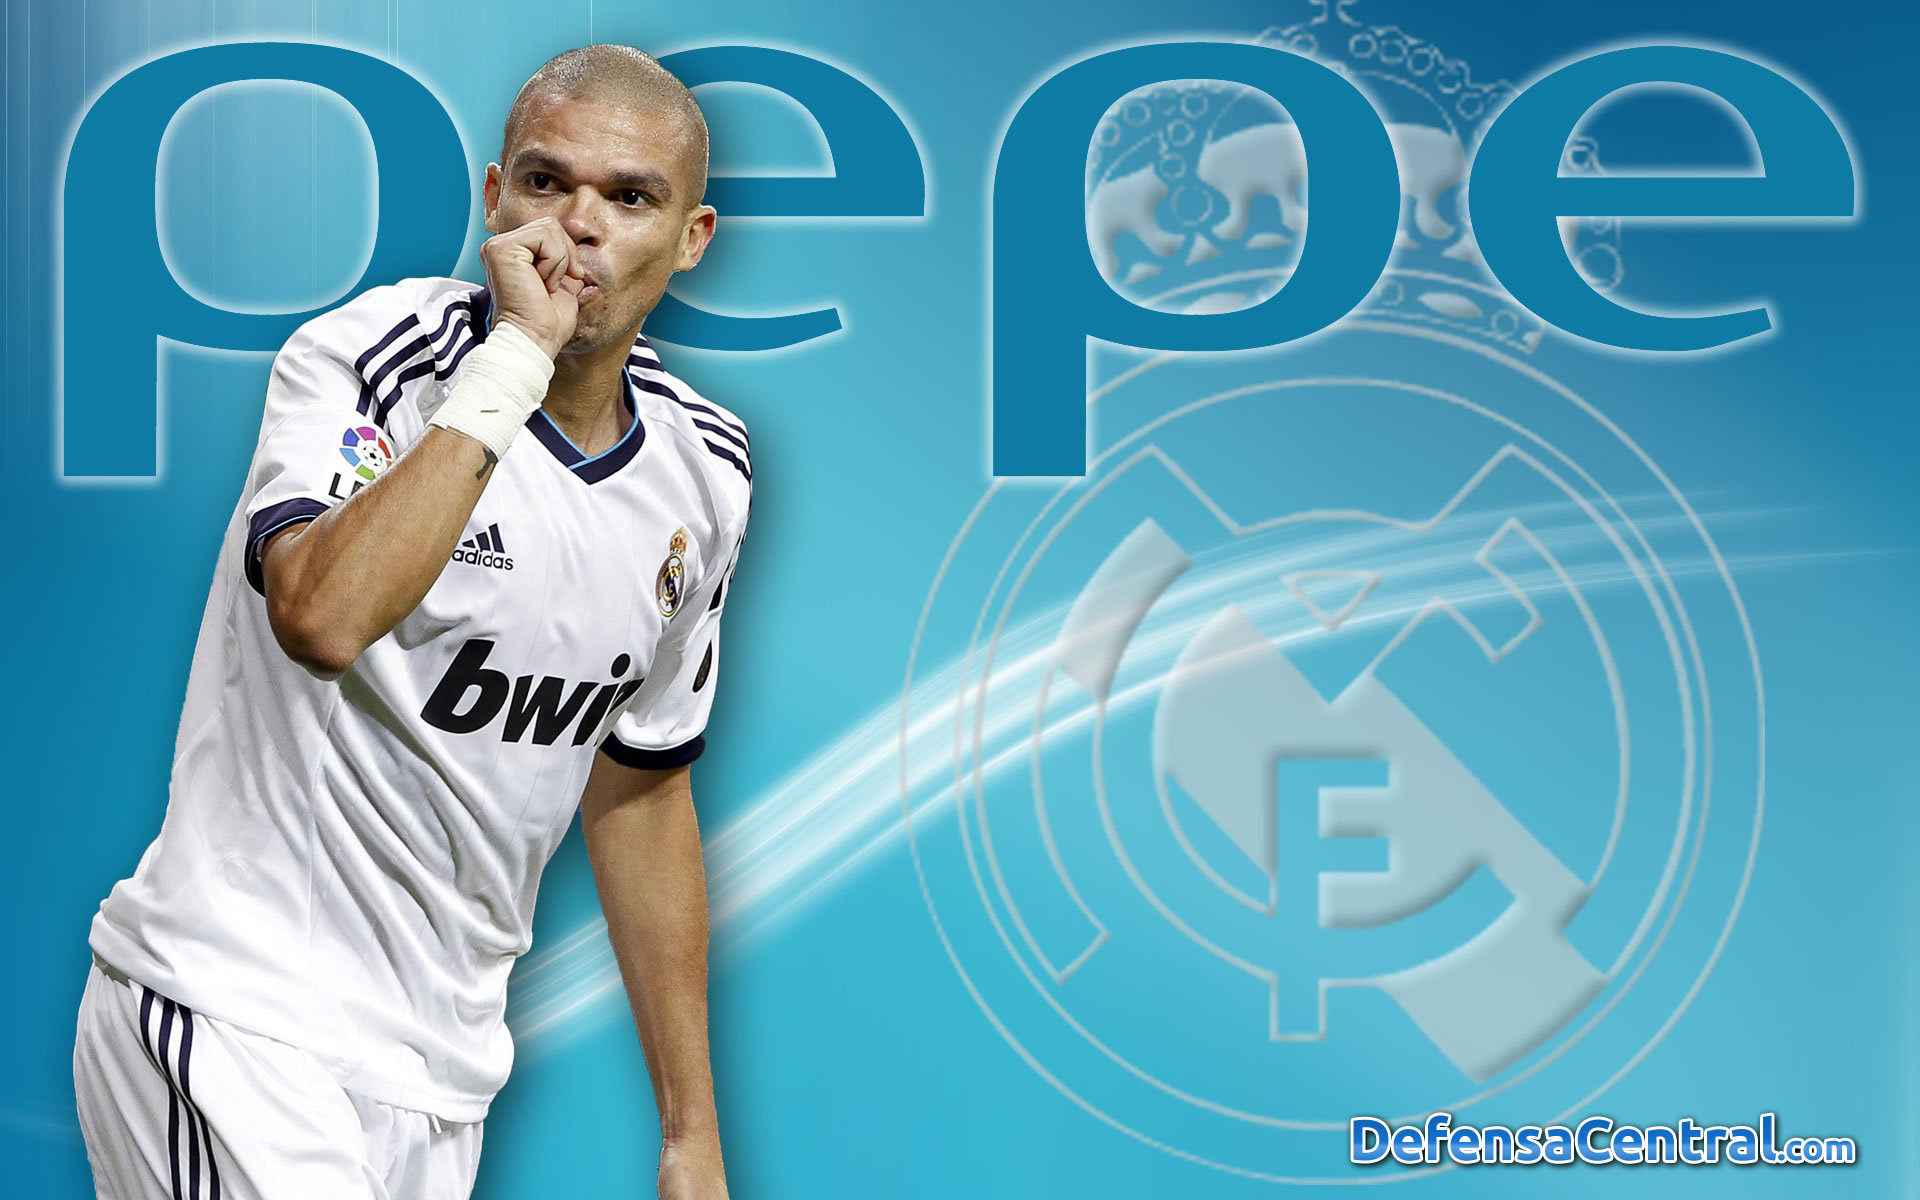 2014 pepe real madrid wallpaper download Desktop Backgrounds for 1920x1200